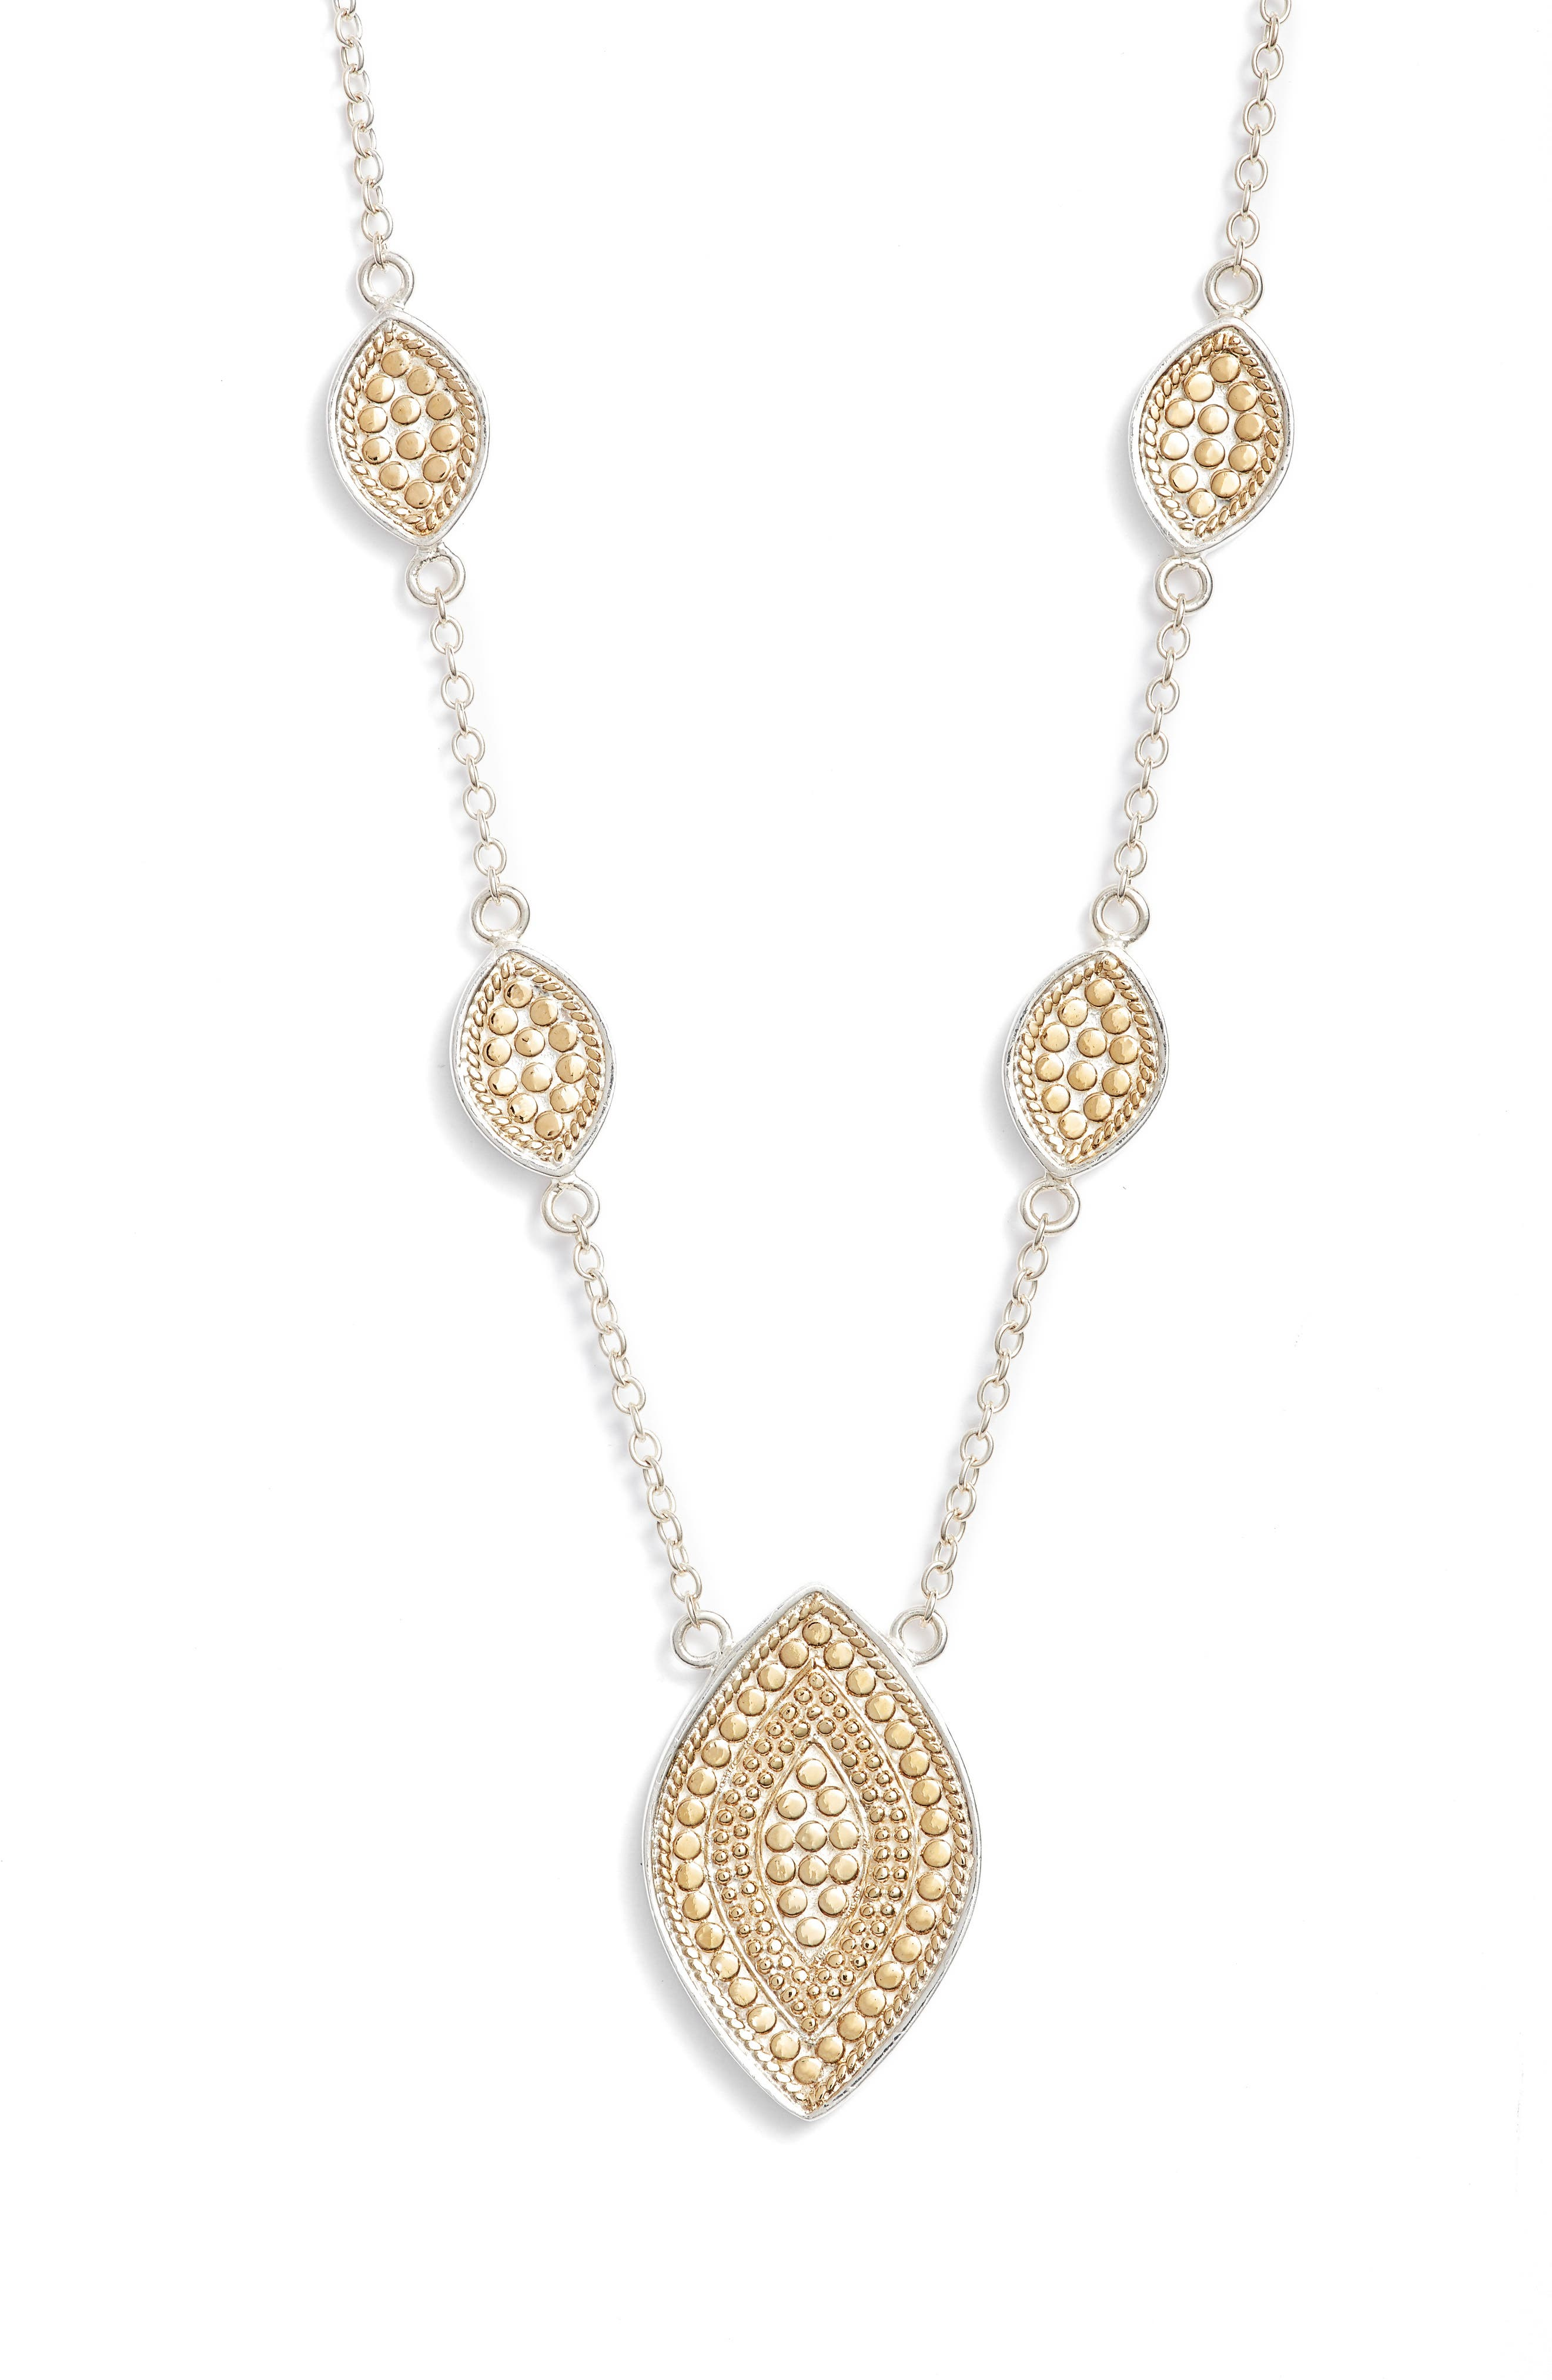 Main Image - Anna Beck Reversible Charm Necklace